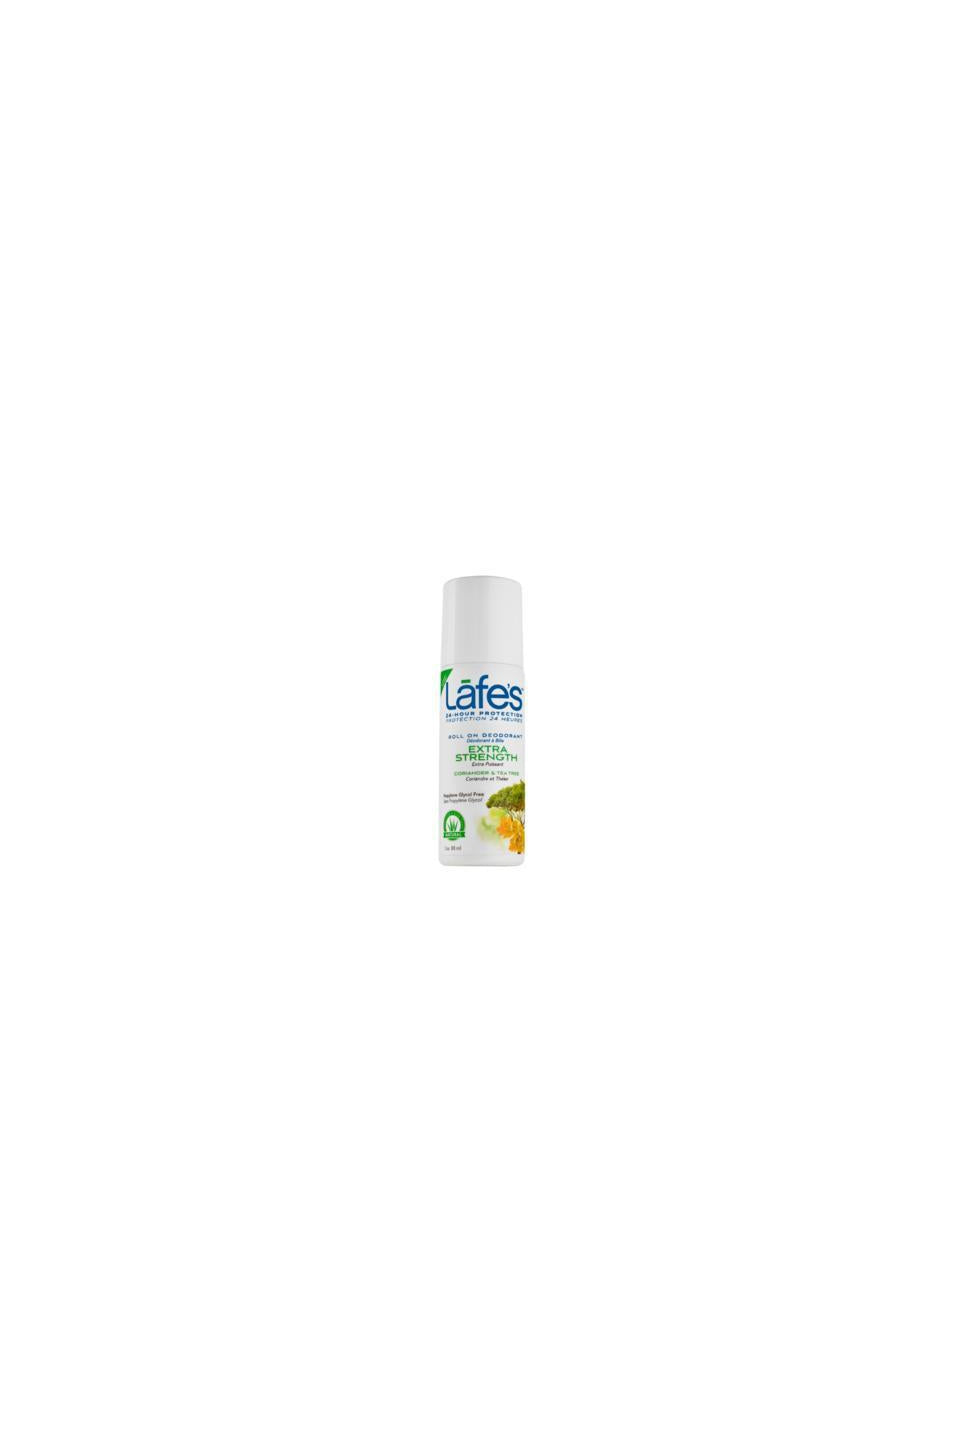 Lafes Roll On Extra Strength 73ml